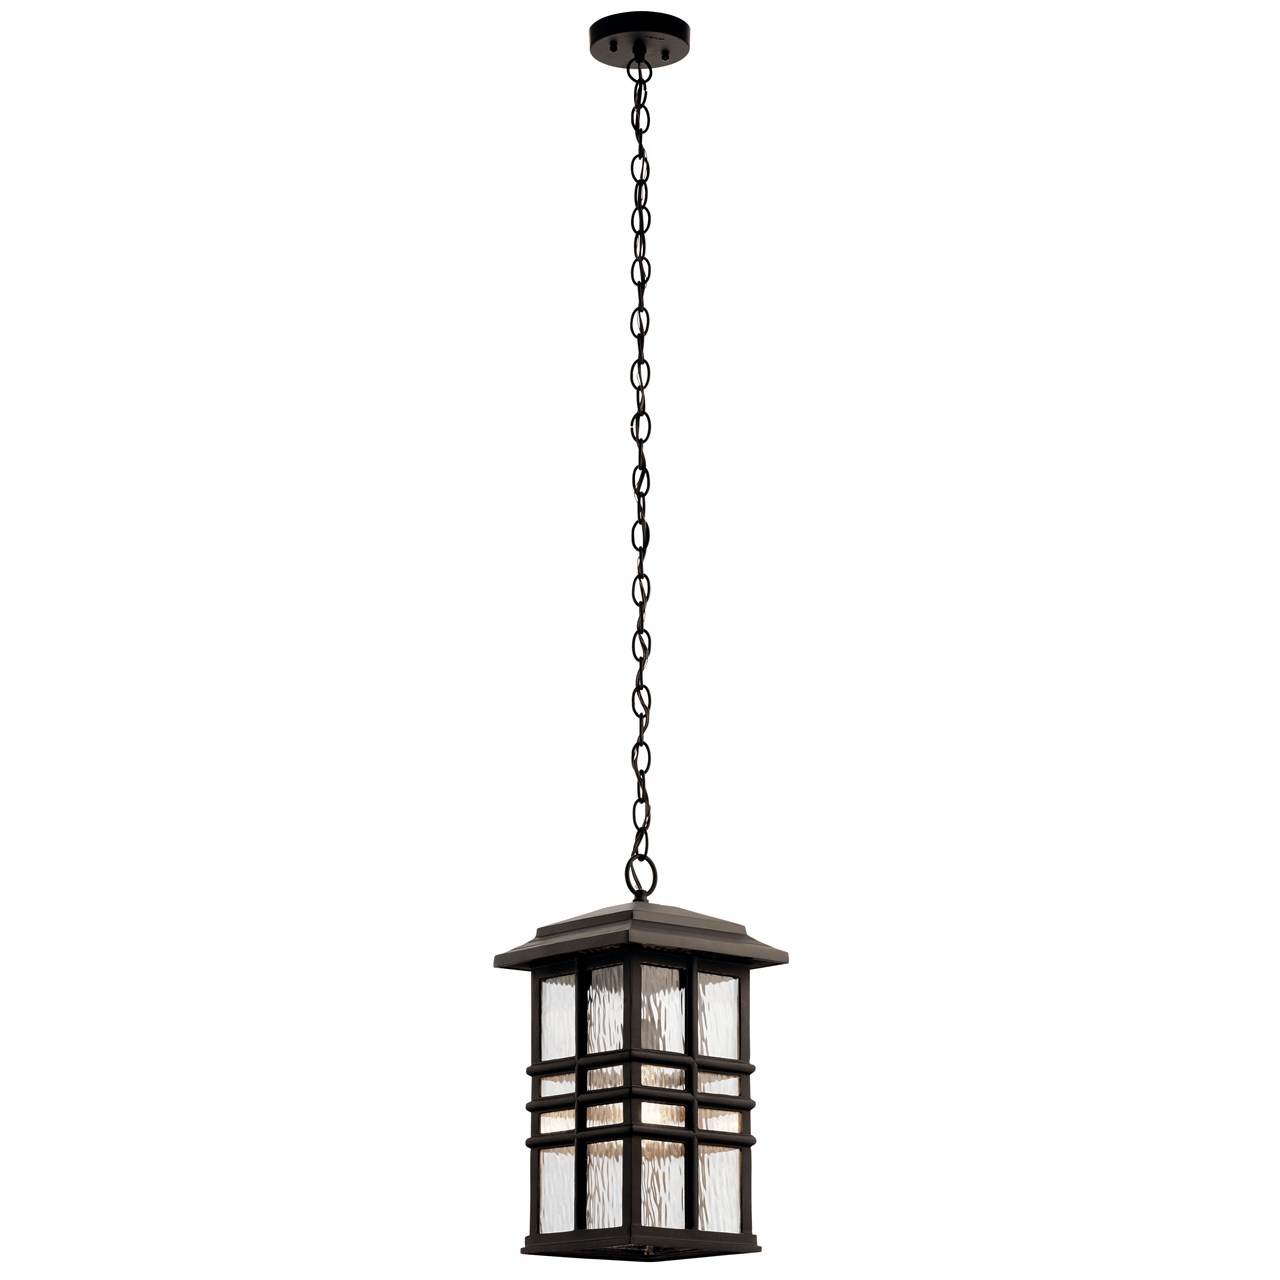 "Beacon Square™ 9.5"" 1 Light Pendant Olde Bronze®"